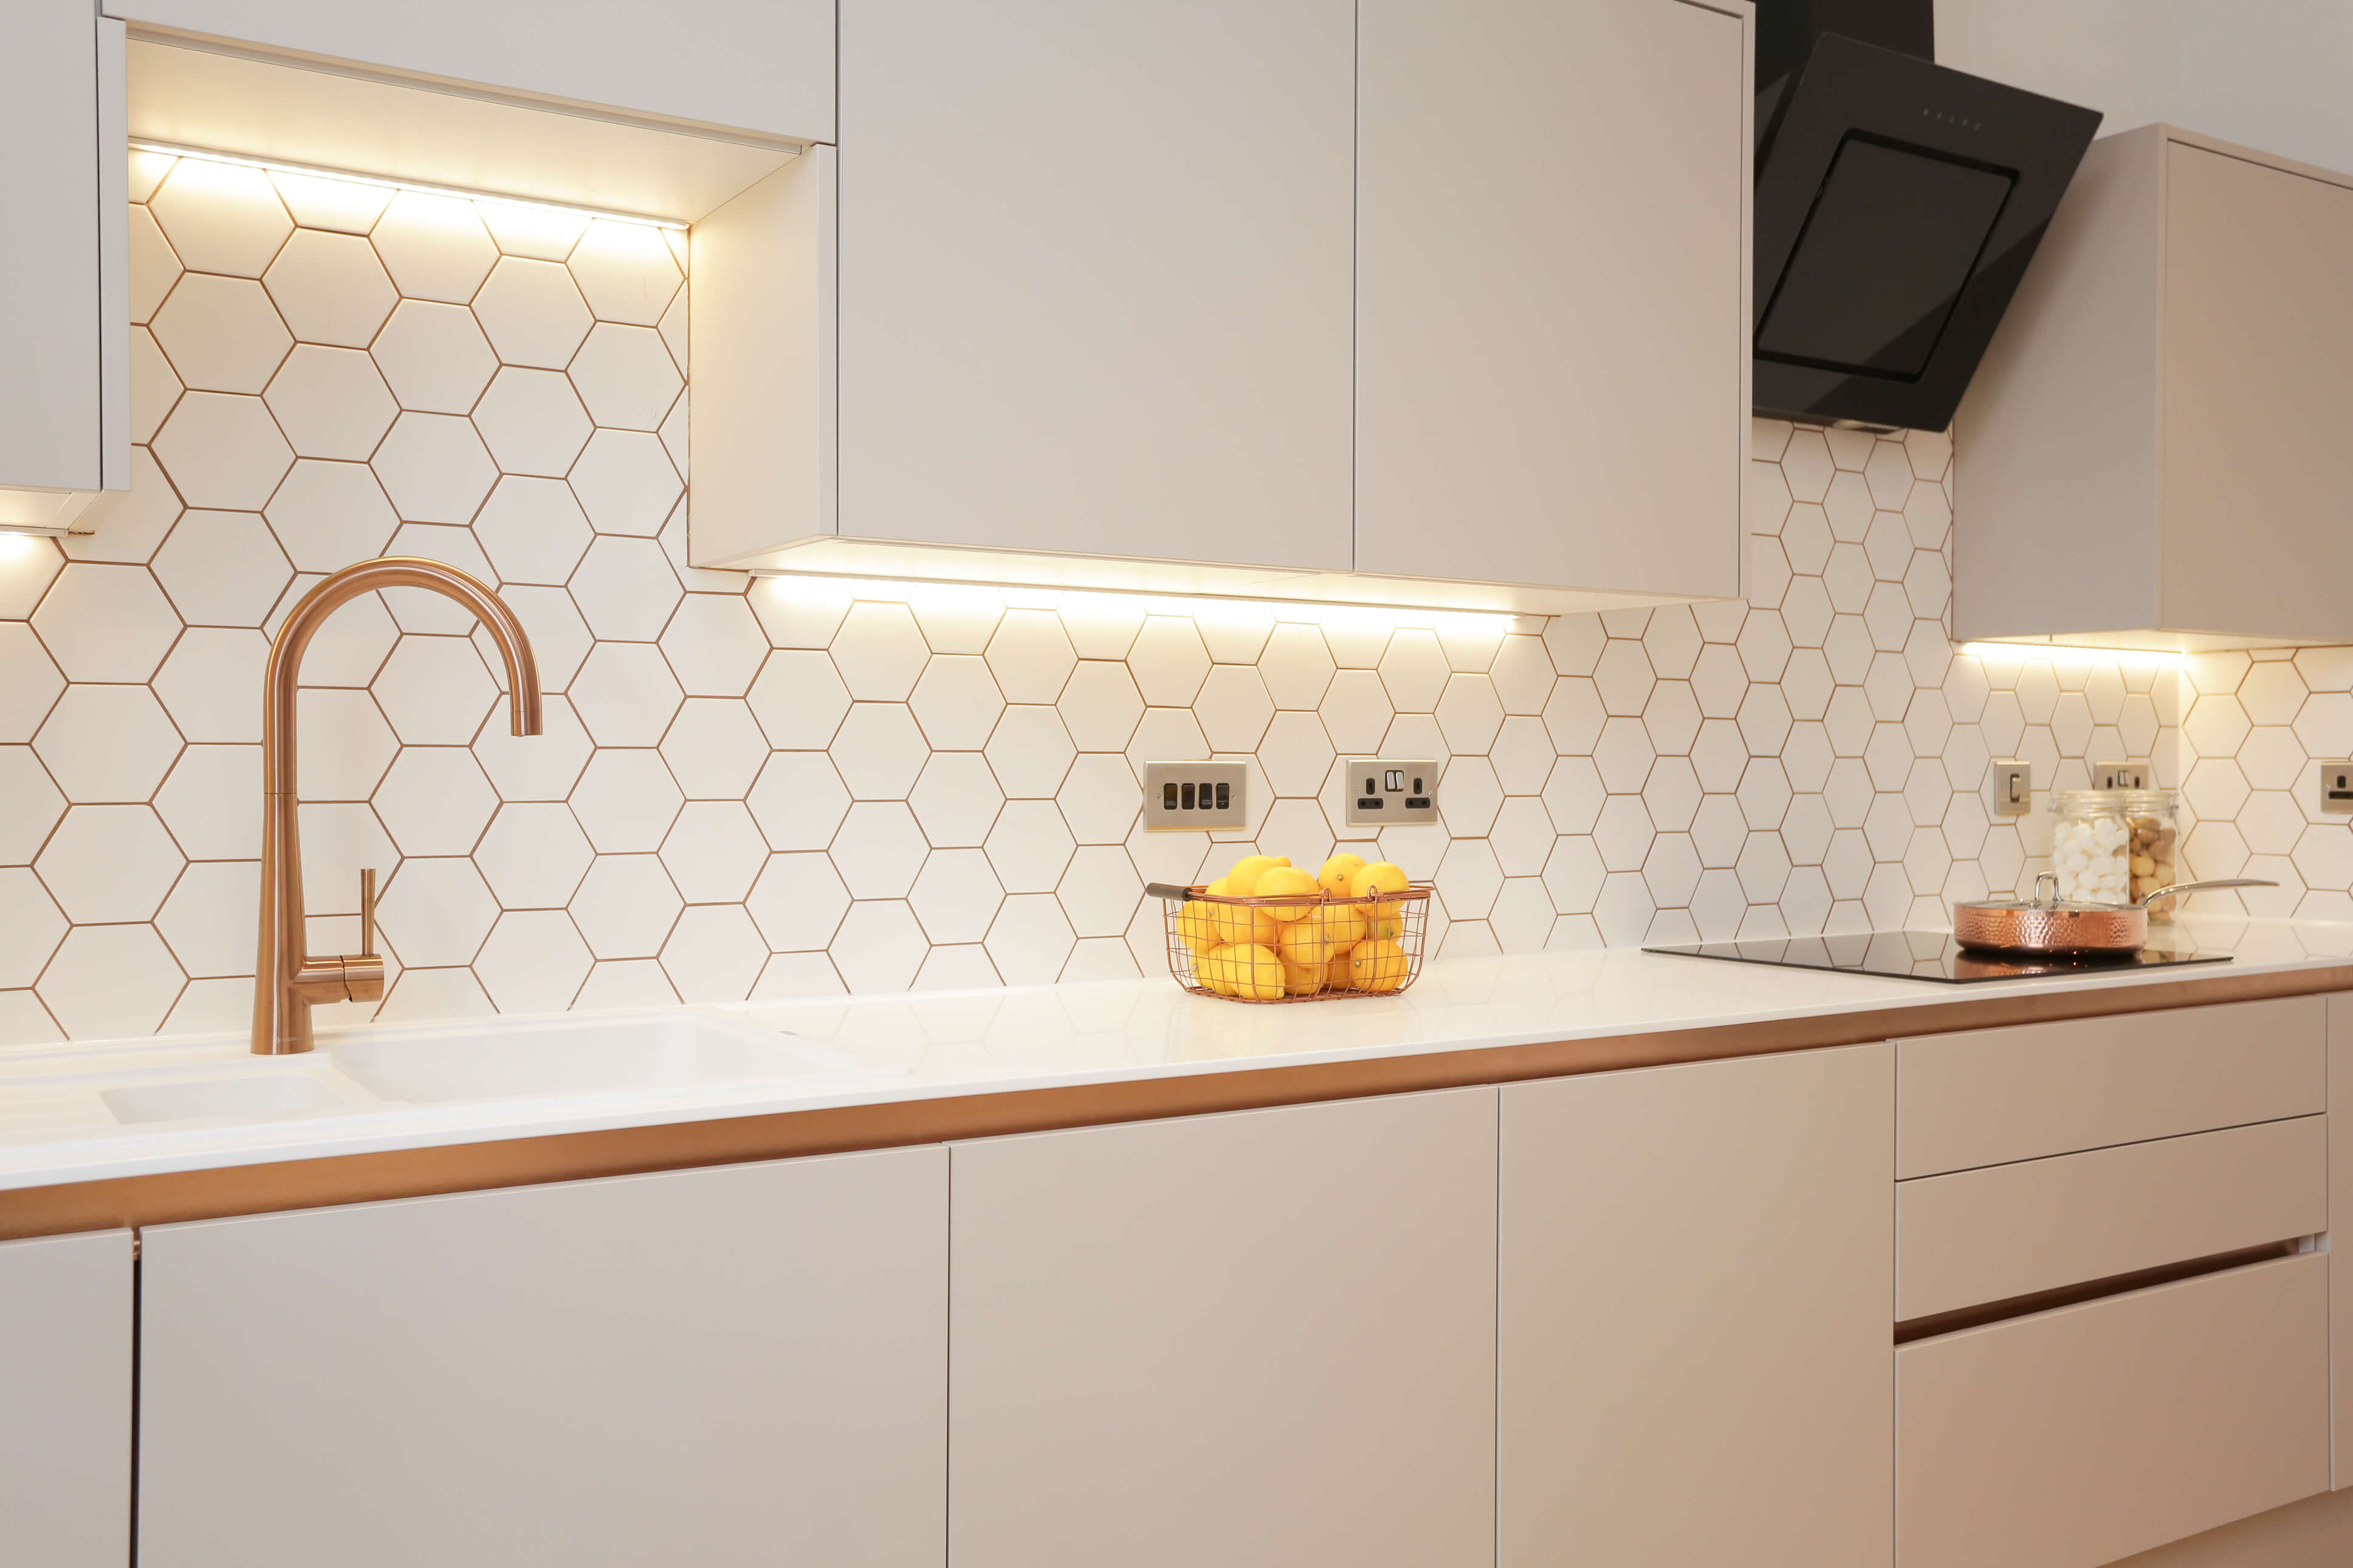 close up of kitchen with hexagonal splashback tiles and stylish copper accents and taps